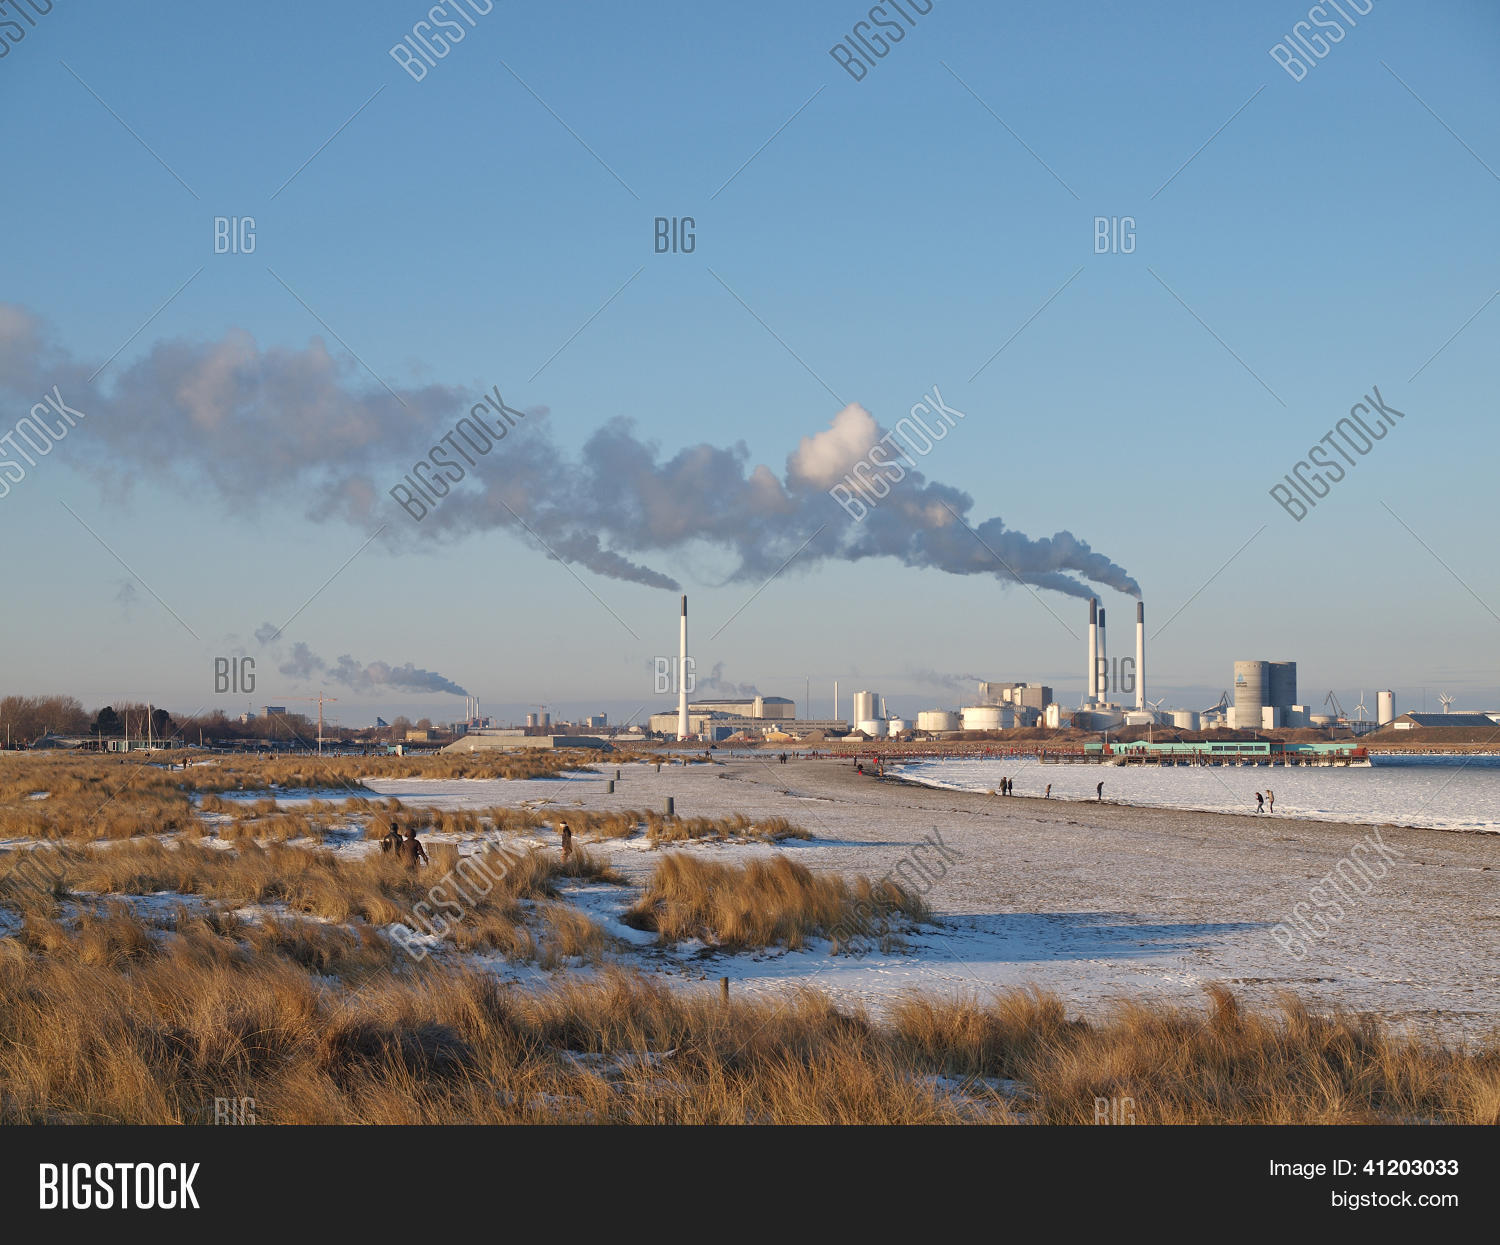 Amager Beach Park amager power station image & photo (free trial) | bigstock